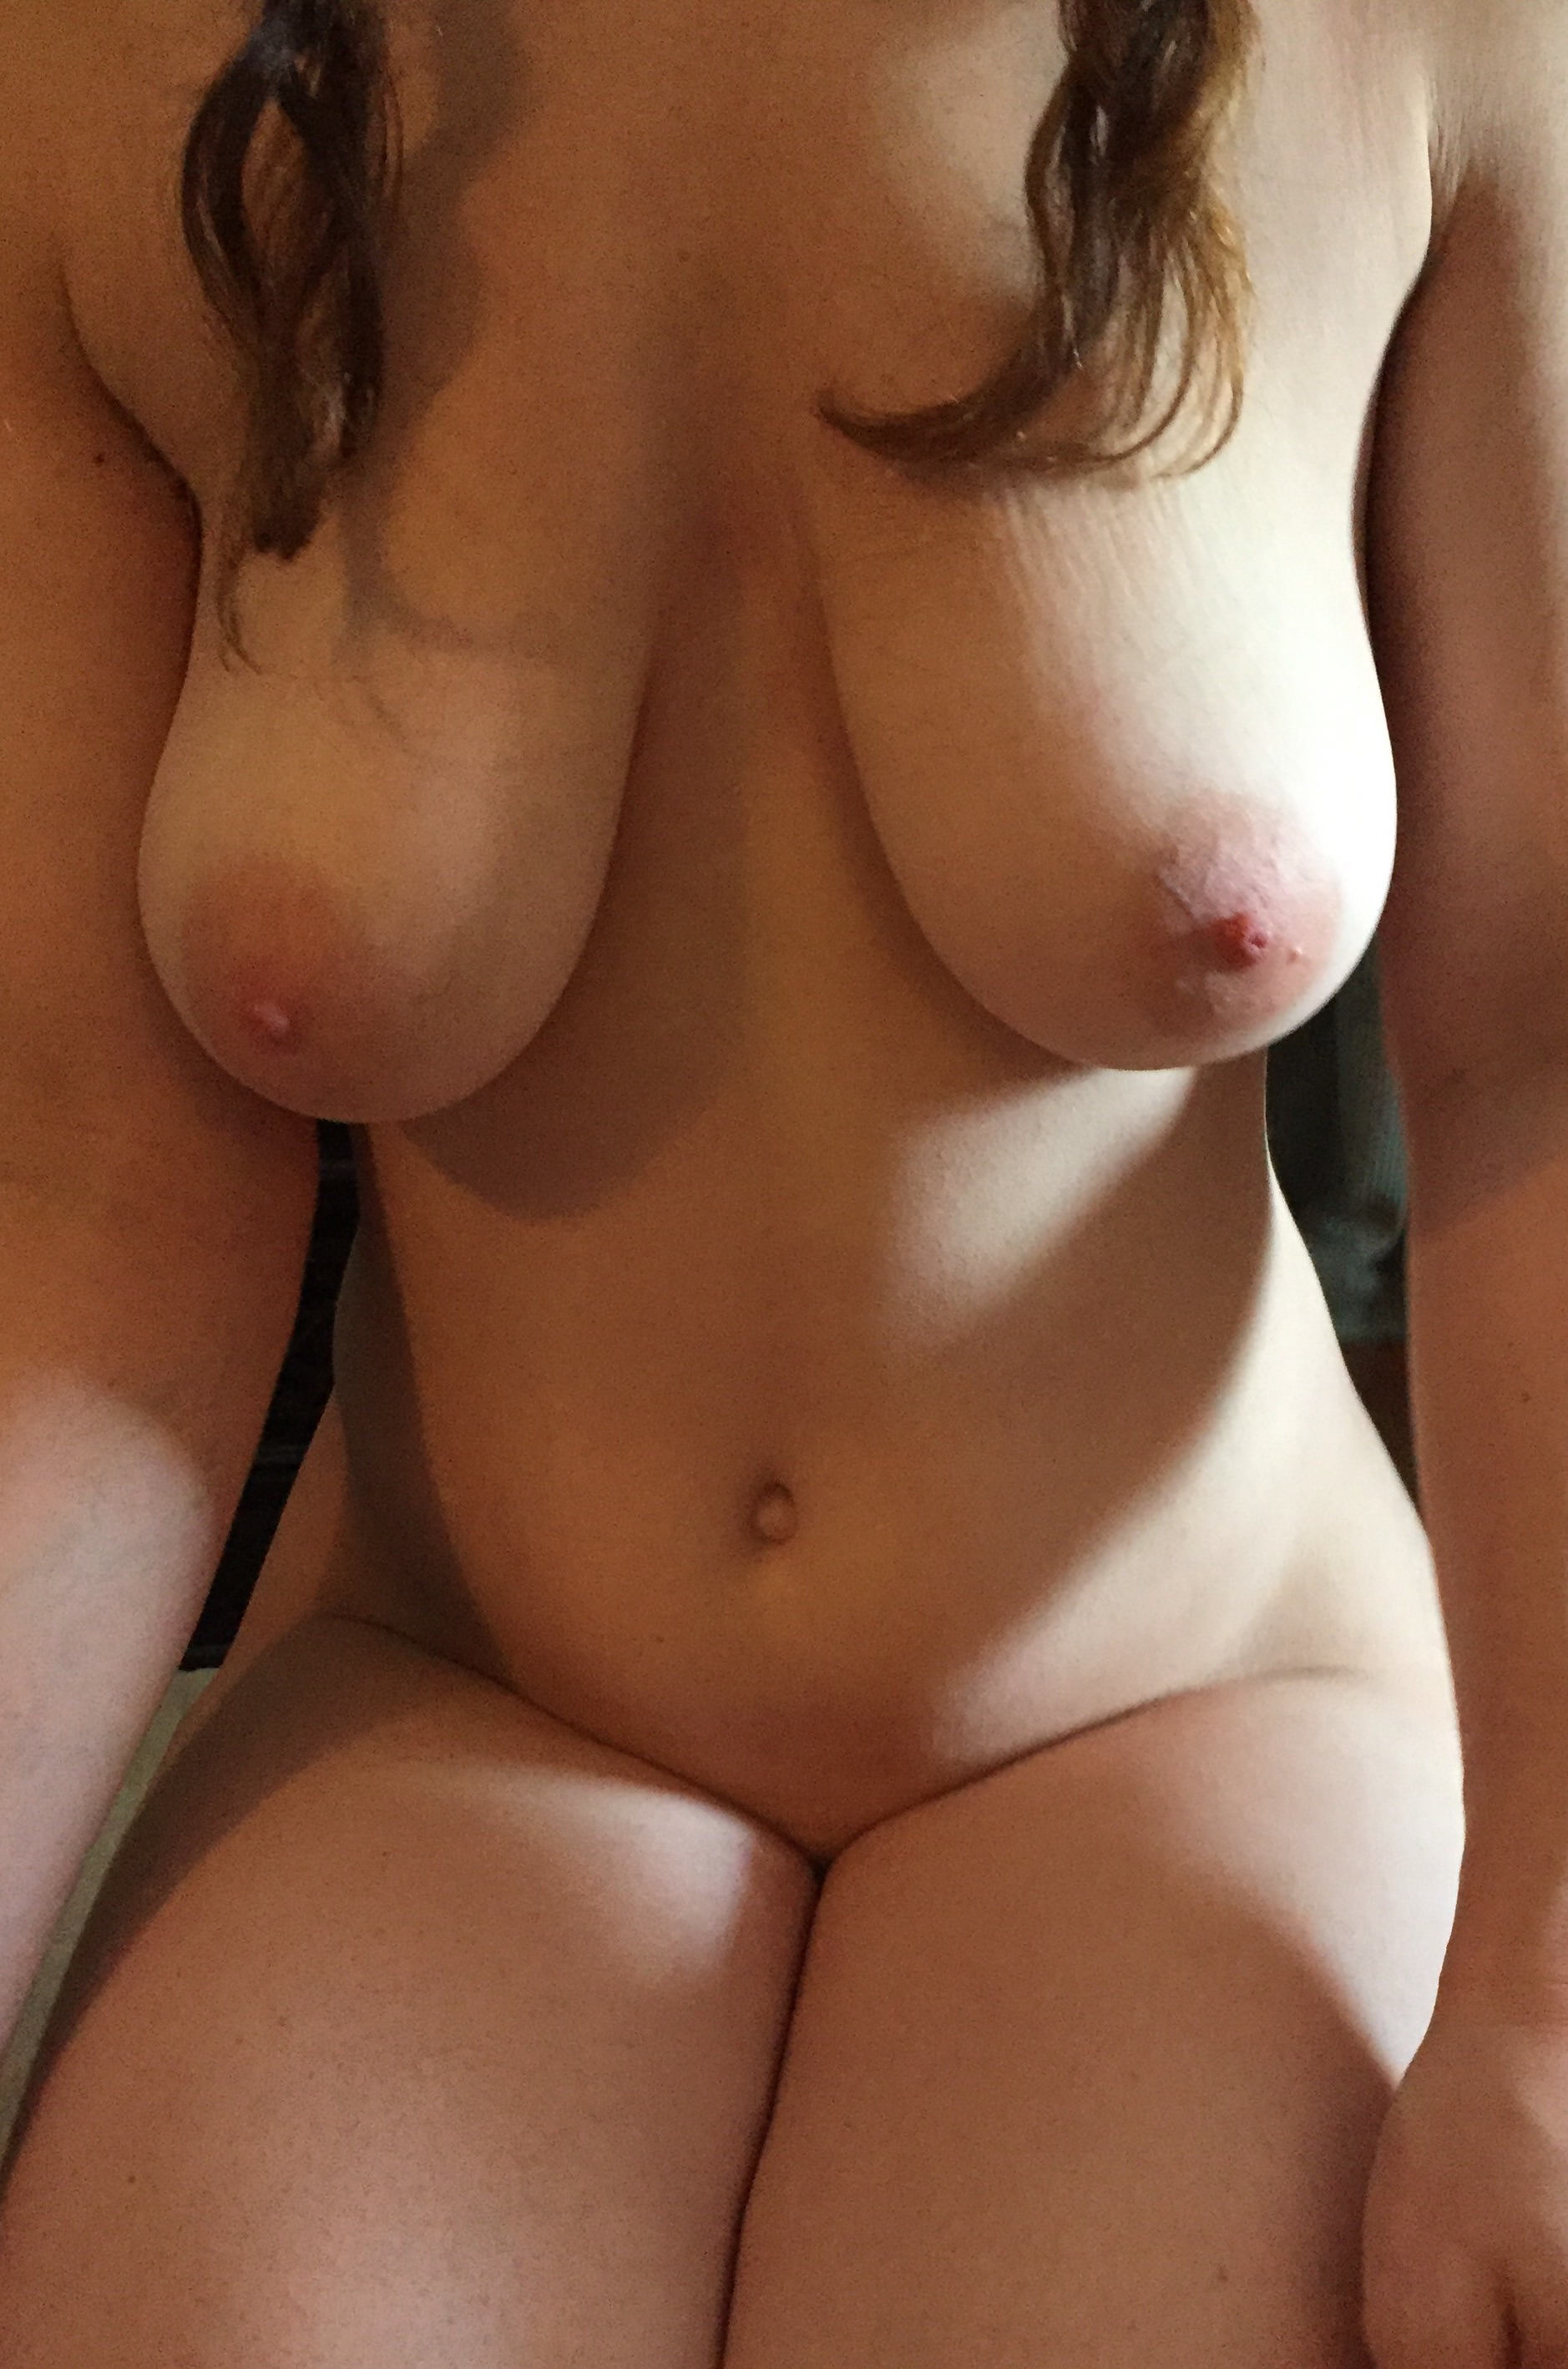 Big tits with thick legs Pigtails Big Tits Thick Thighs F Porn Pic Eporner